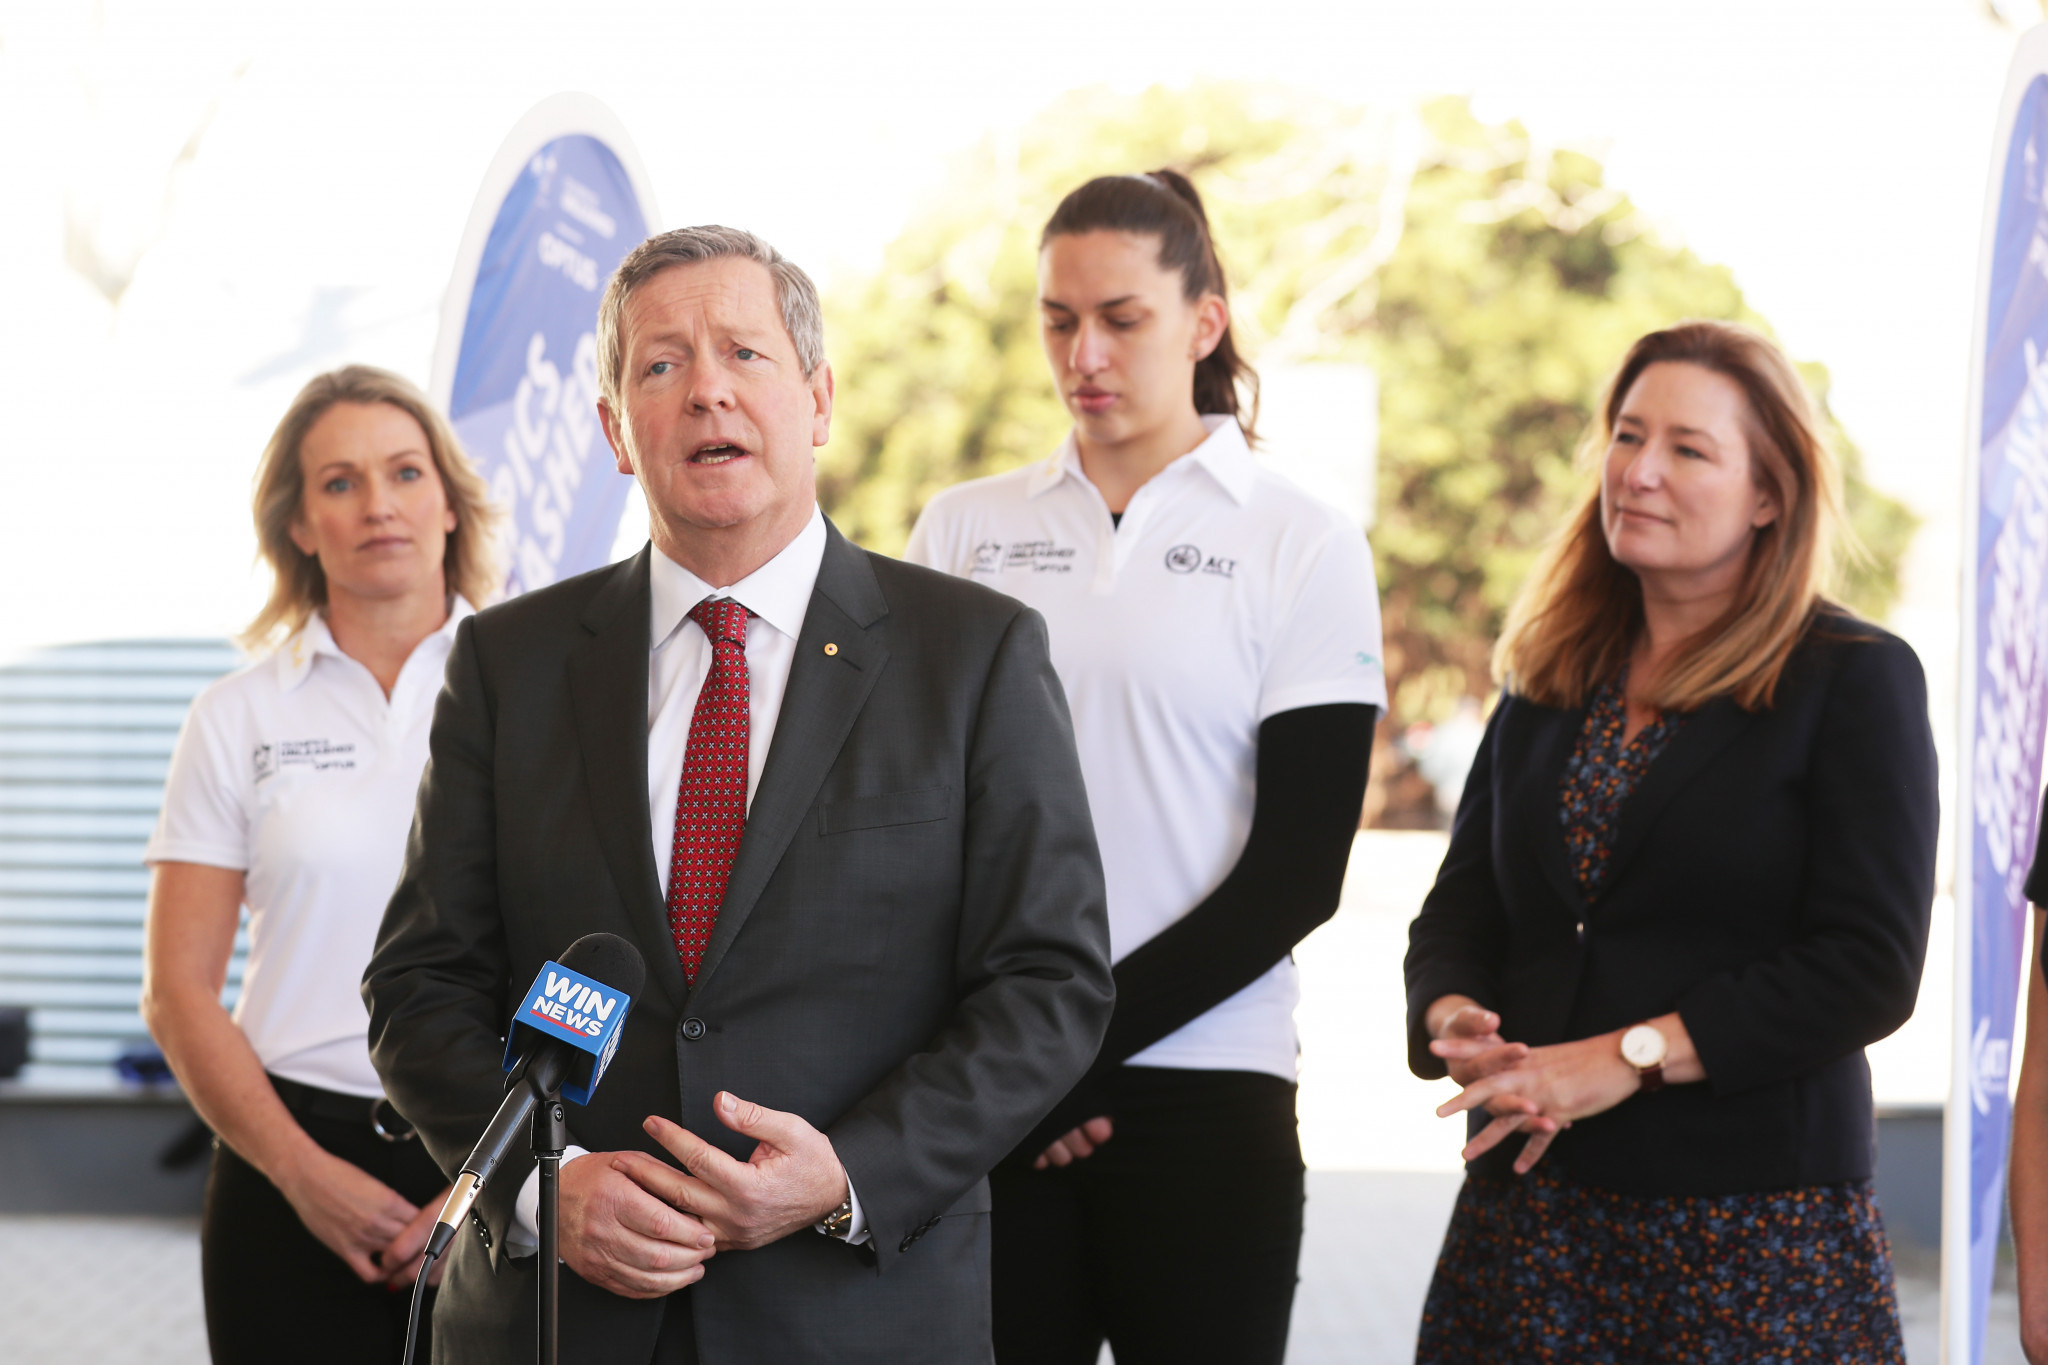 Australia Olympic Committee chief executive Matt Carroll speaks during the Olympic Unleashed unveiling at Ainslie School in Canberra ©Getty Images